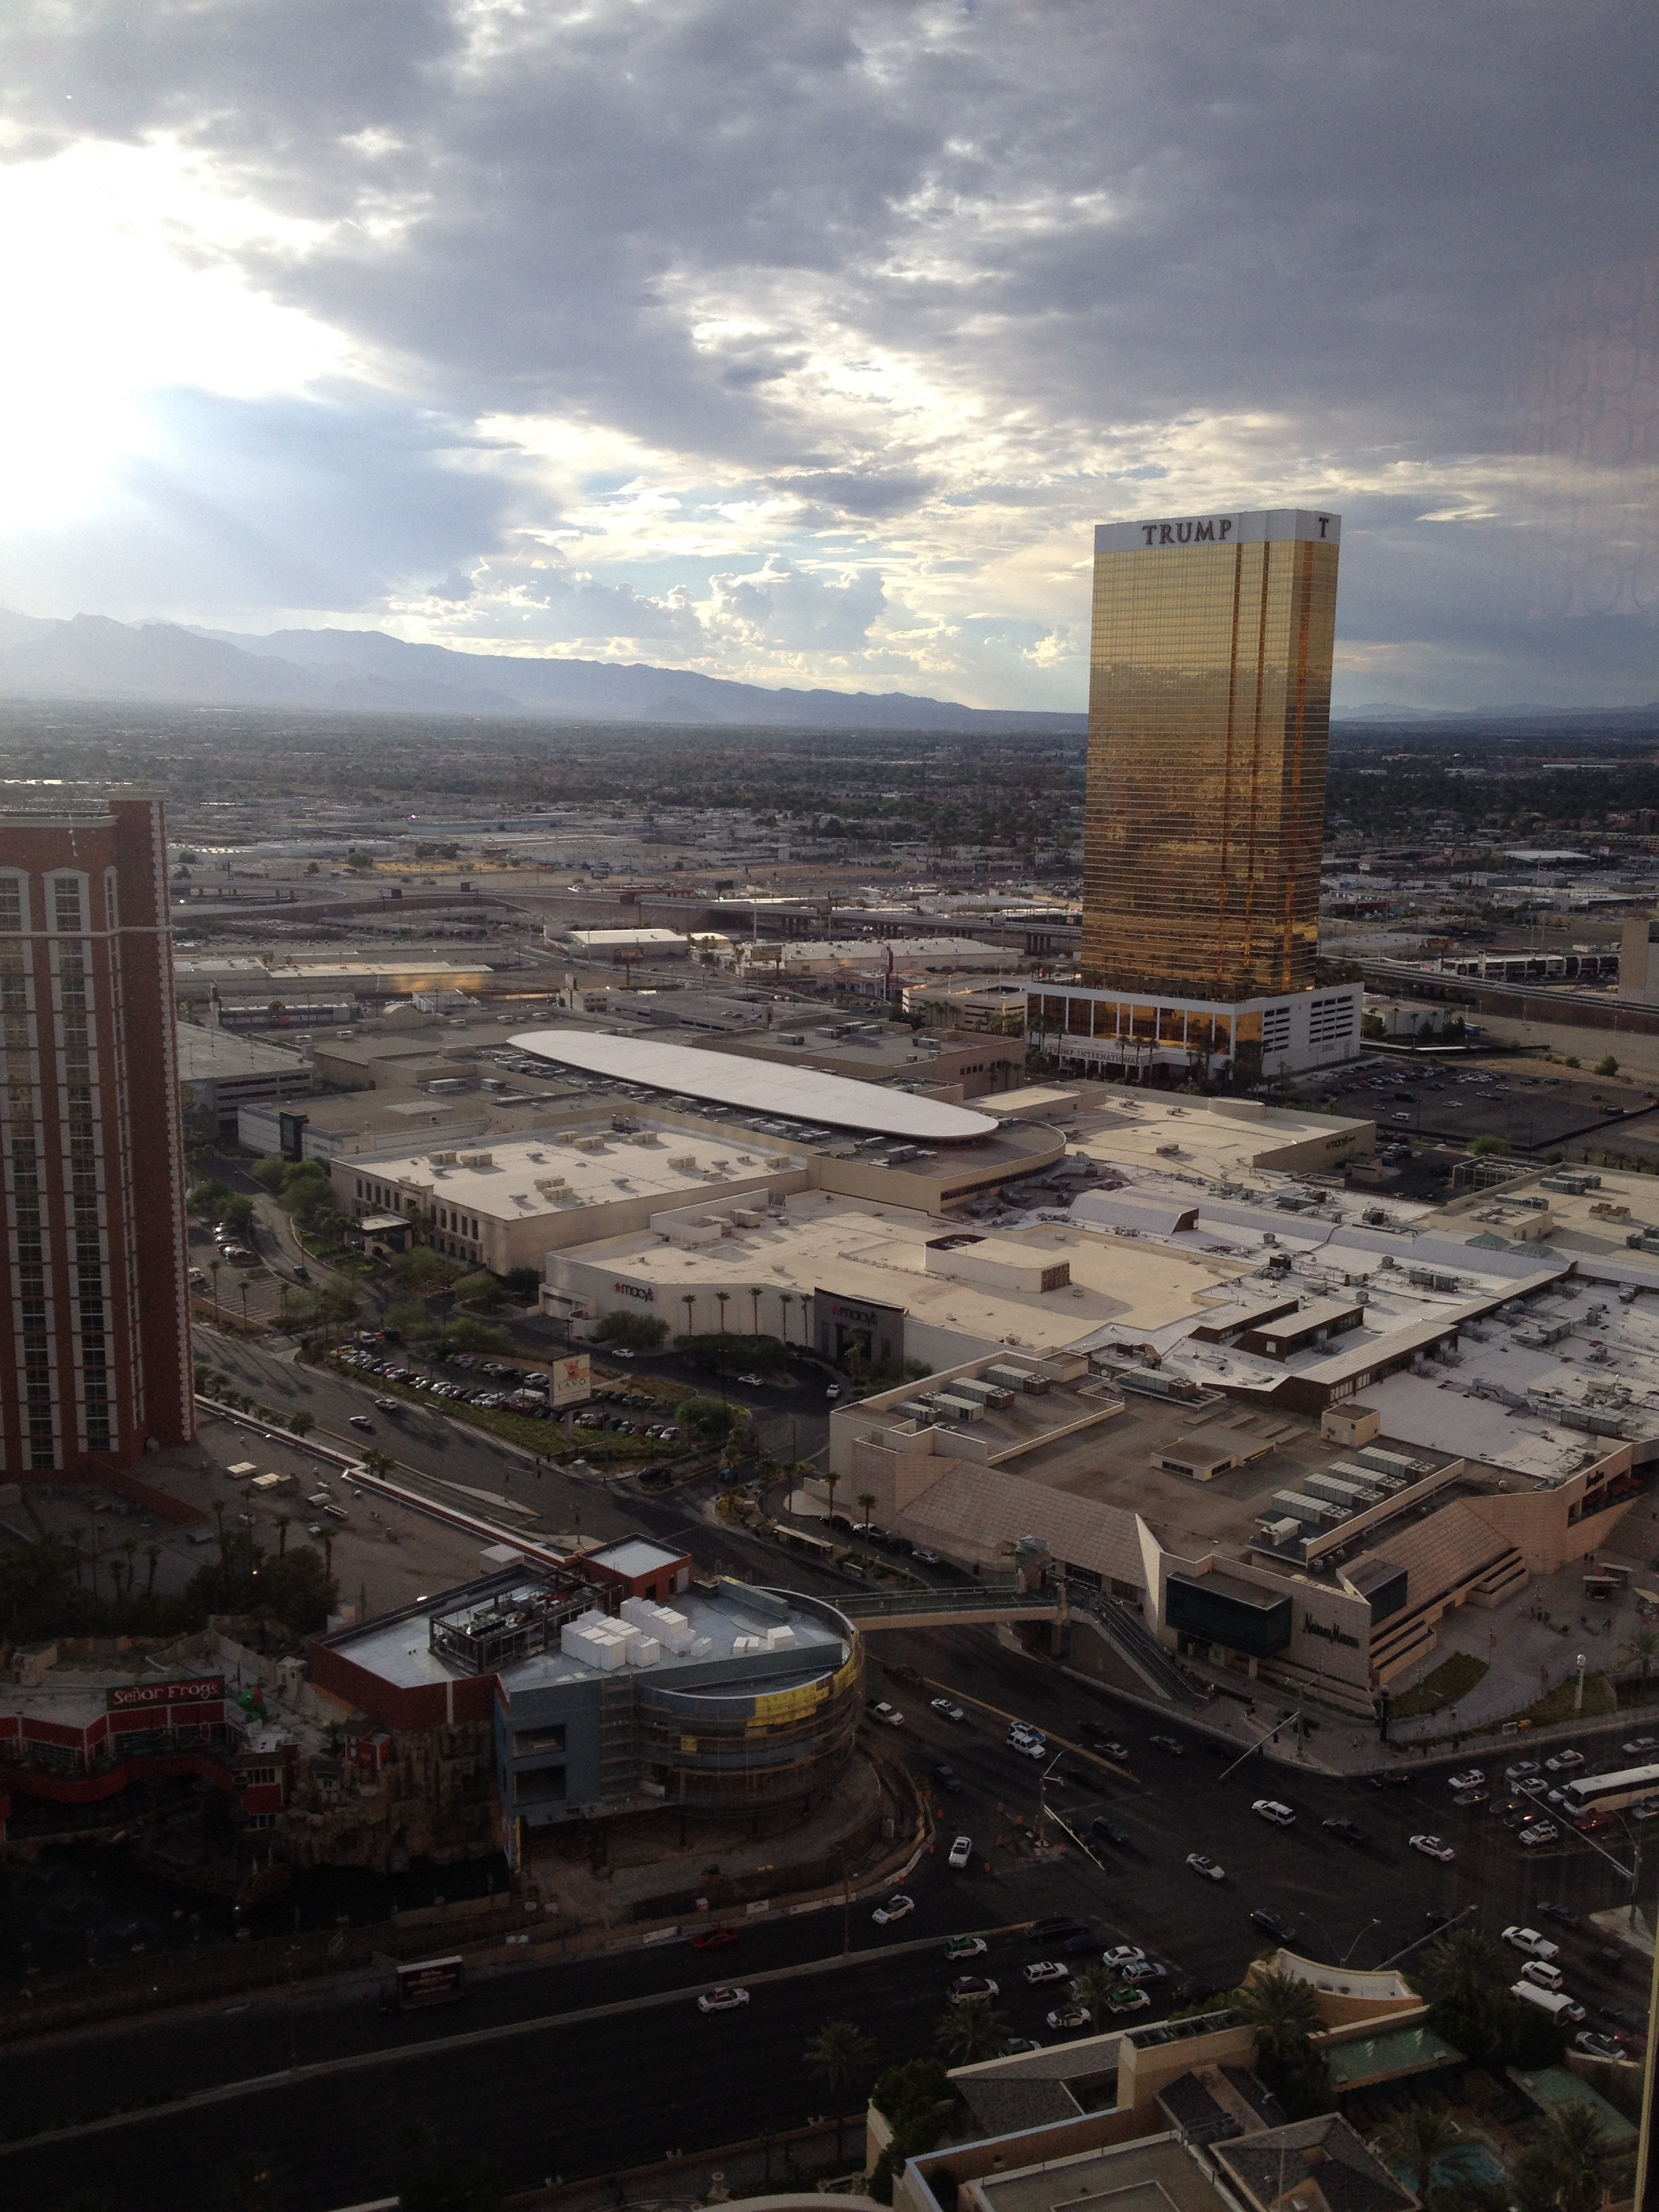 Superieur I Recently Had To Spend Five Days In Las Vegas. Five Days And Four Nights  Too Many. Despite Living Just A Four Hour Drive Away For Most Of My Life,  ...